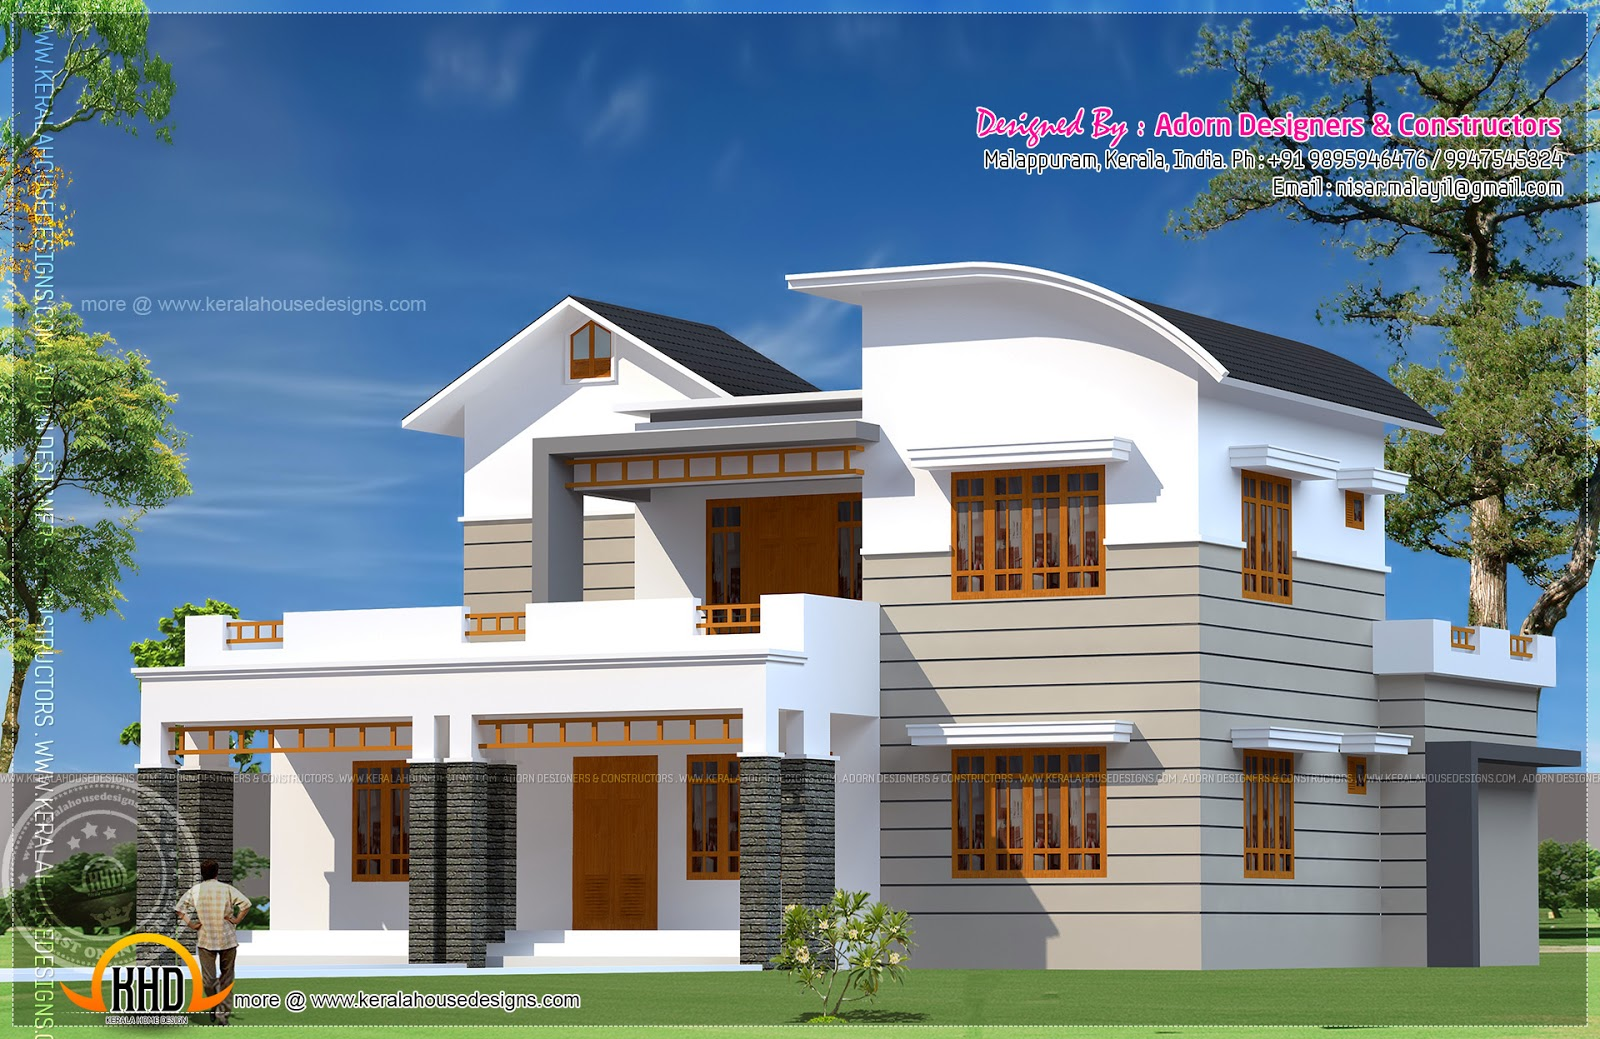 5 Bedroom House Exterior Kerala Home Design And Floor Plans